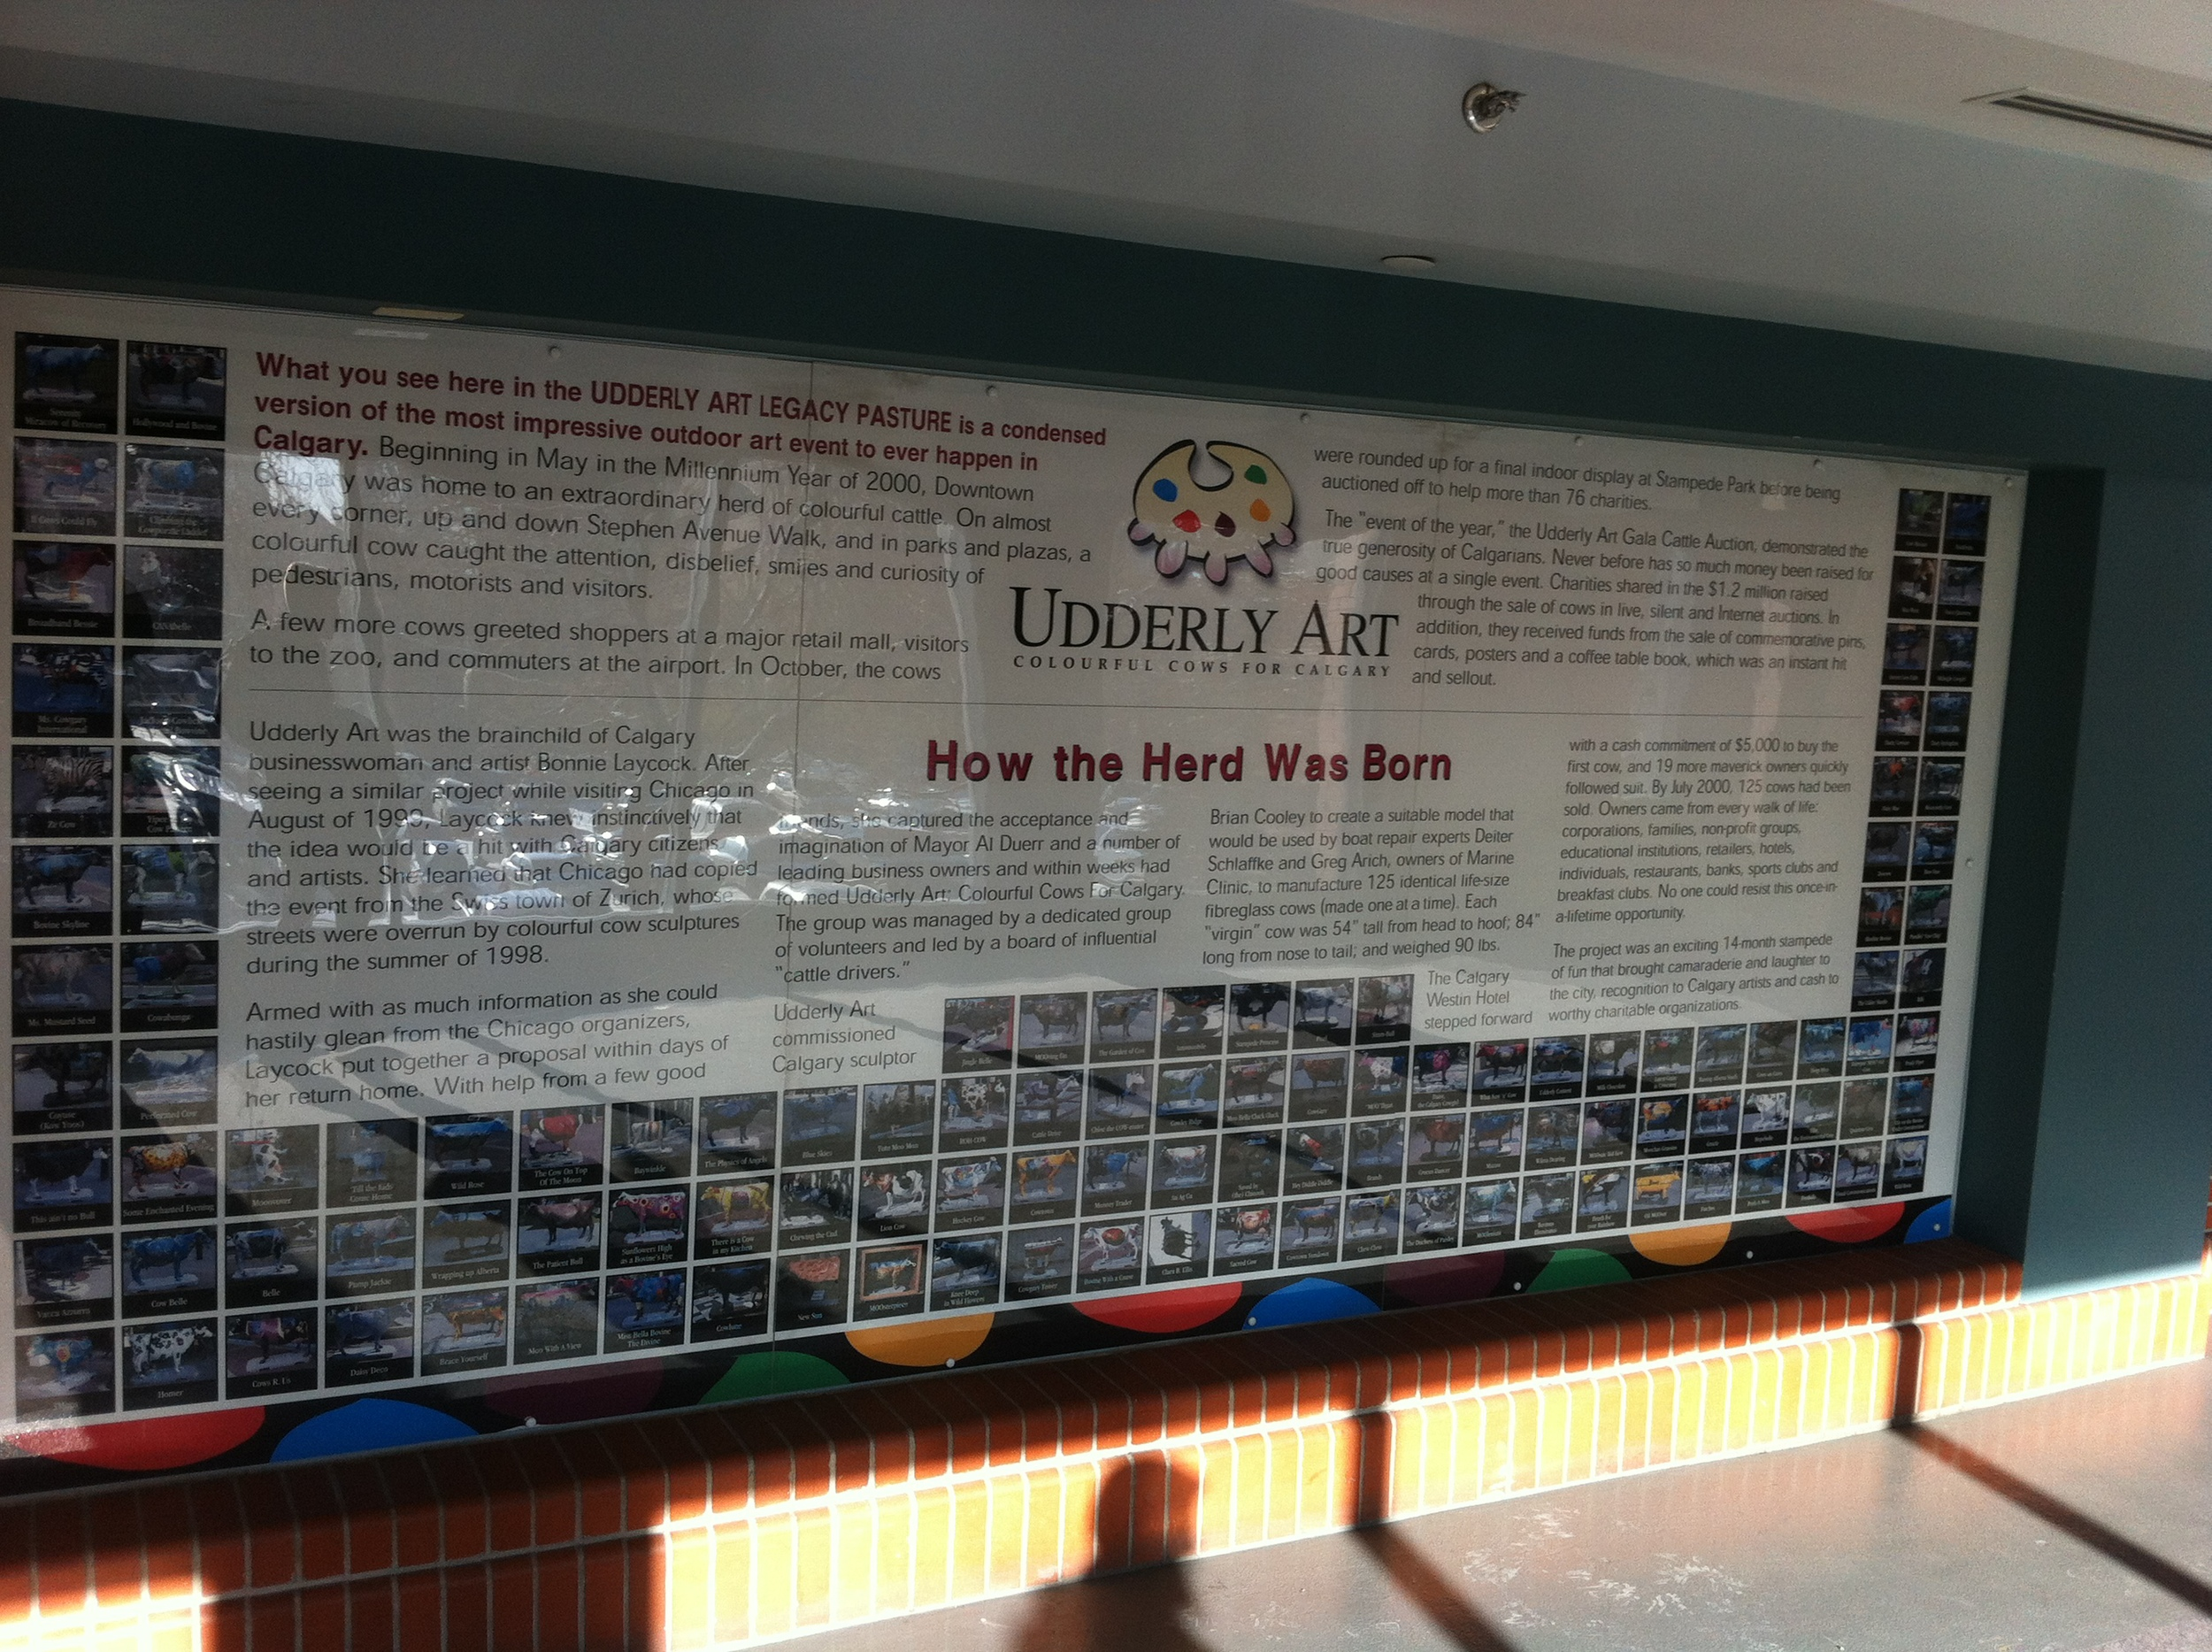 Another large information panel gives the history of the project and has a picture of each of the more that 100 cows commissioned for the project.